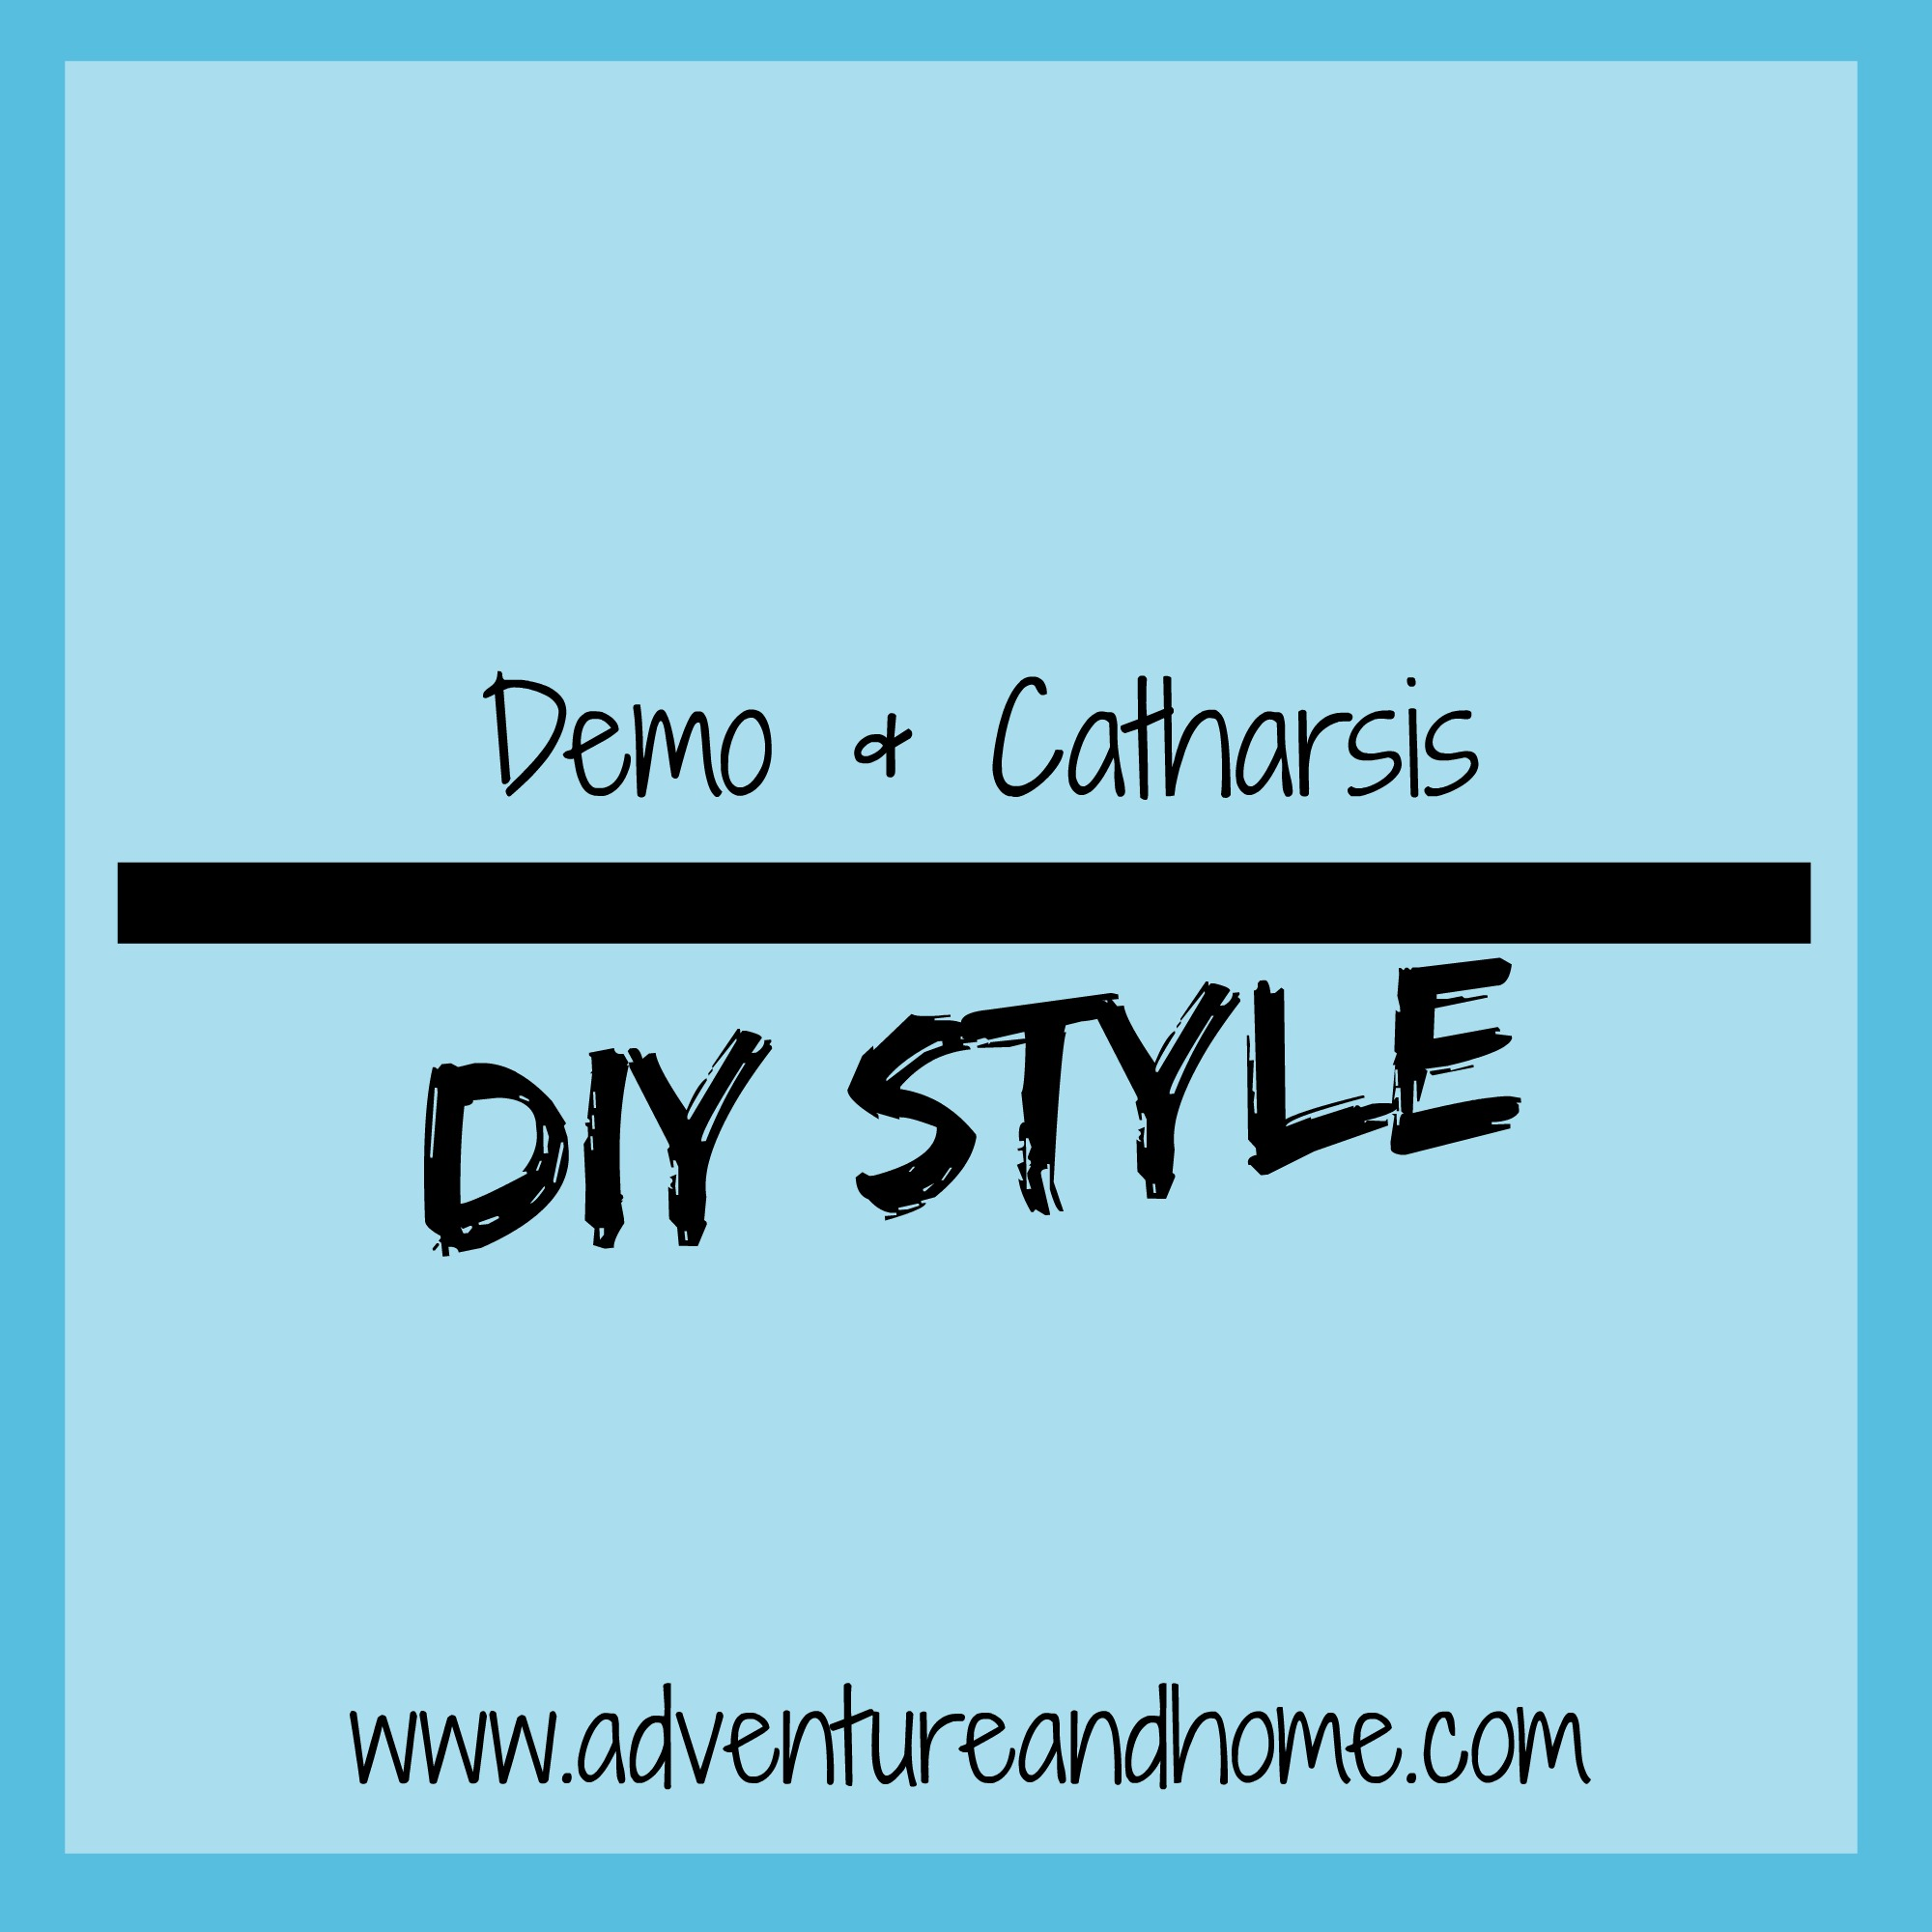 Demo Catharsis–DIY Style